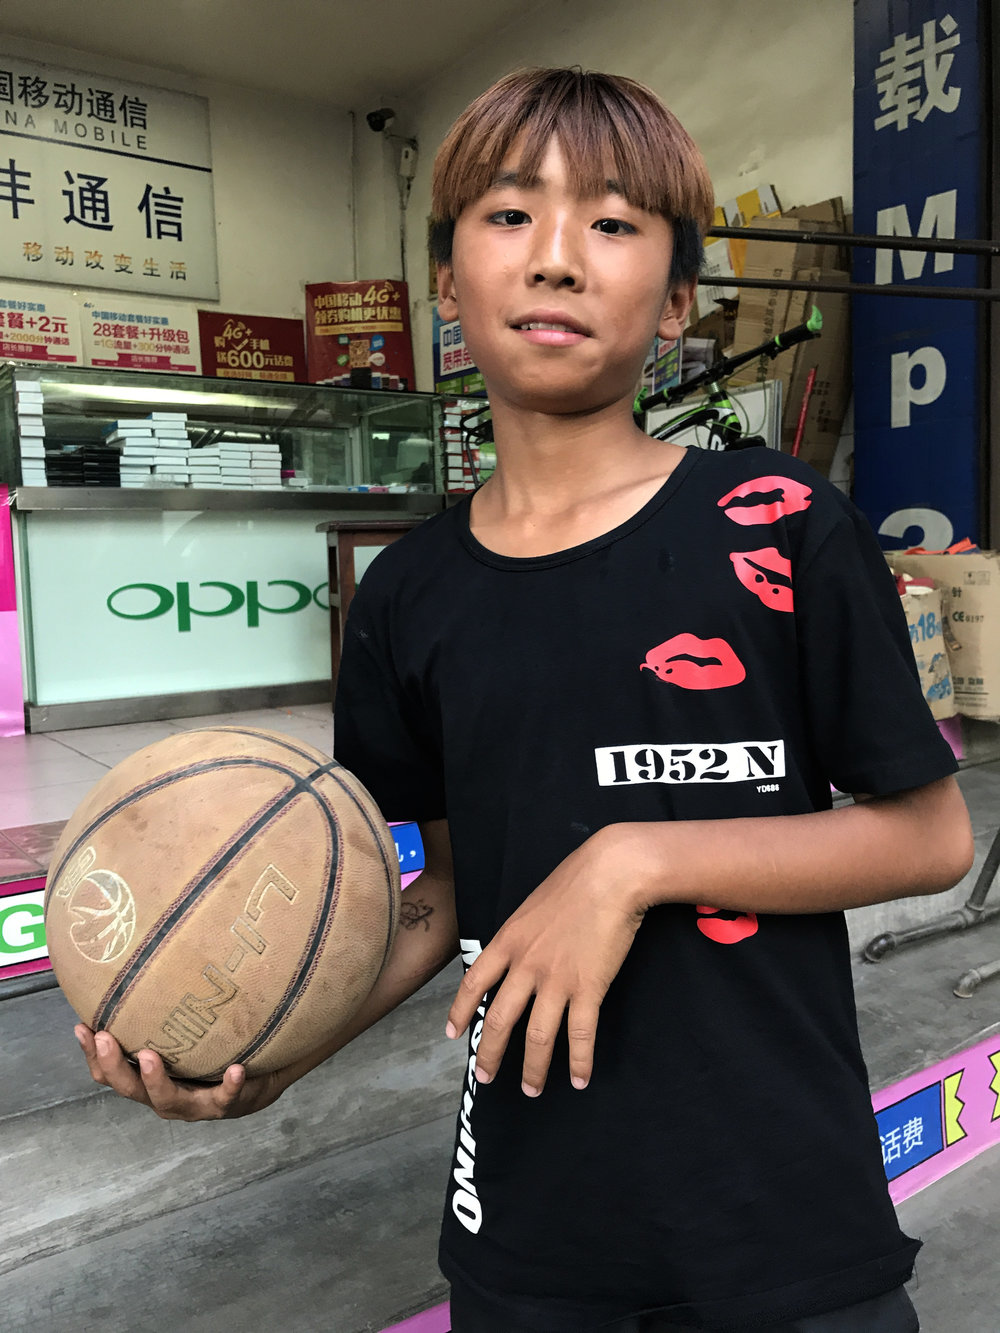 Boy from Honghe.